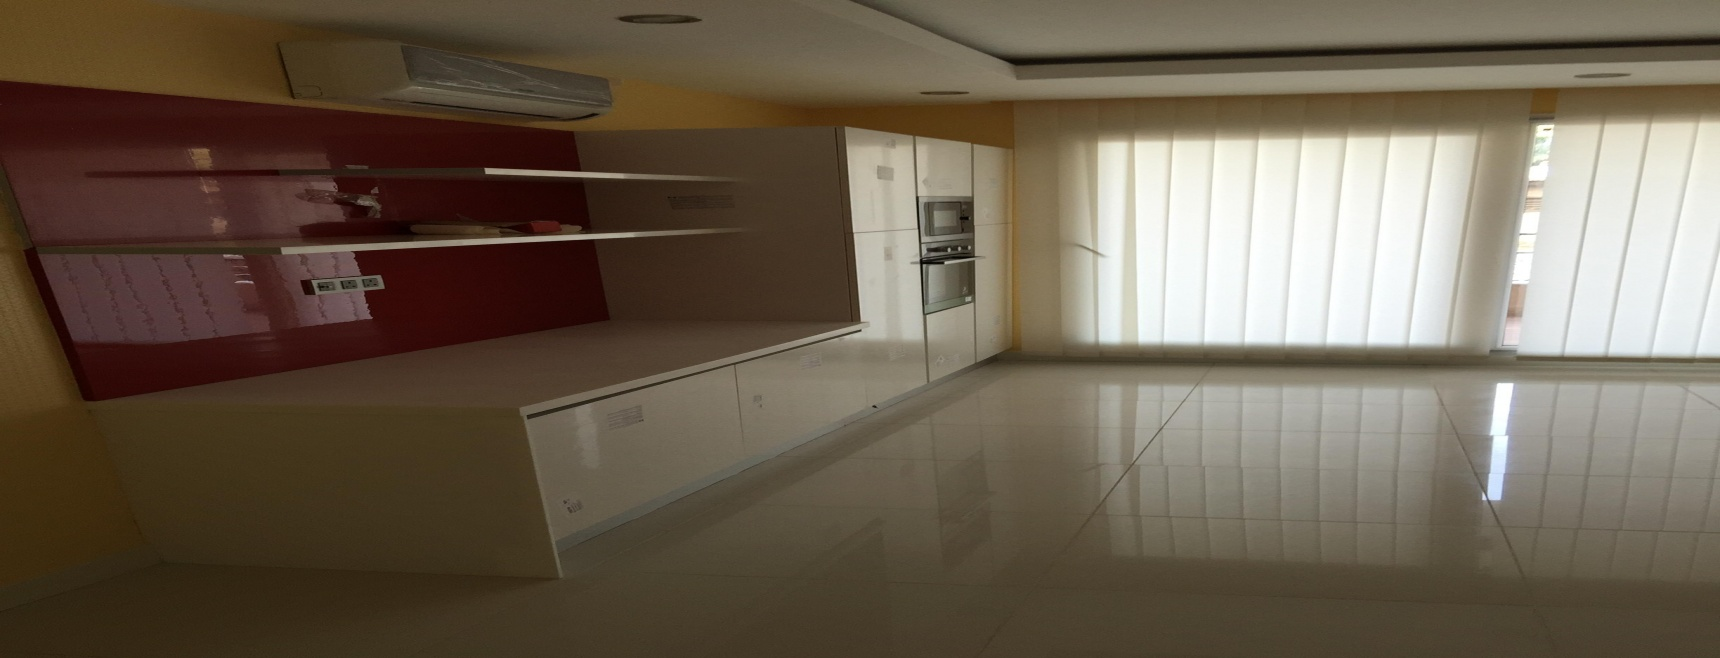 3 Bedrooms, Apartment, For Sale, Nortei Ababio Street, 4 Bathrooms, Listing ID 1027, Ghana,